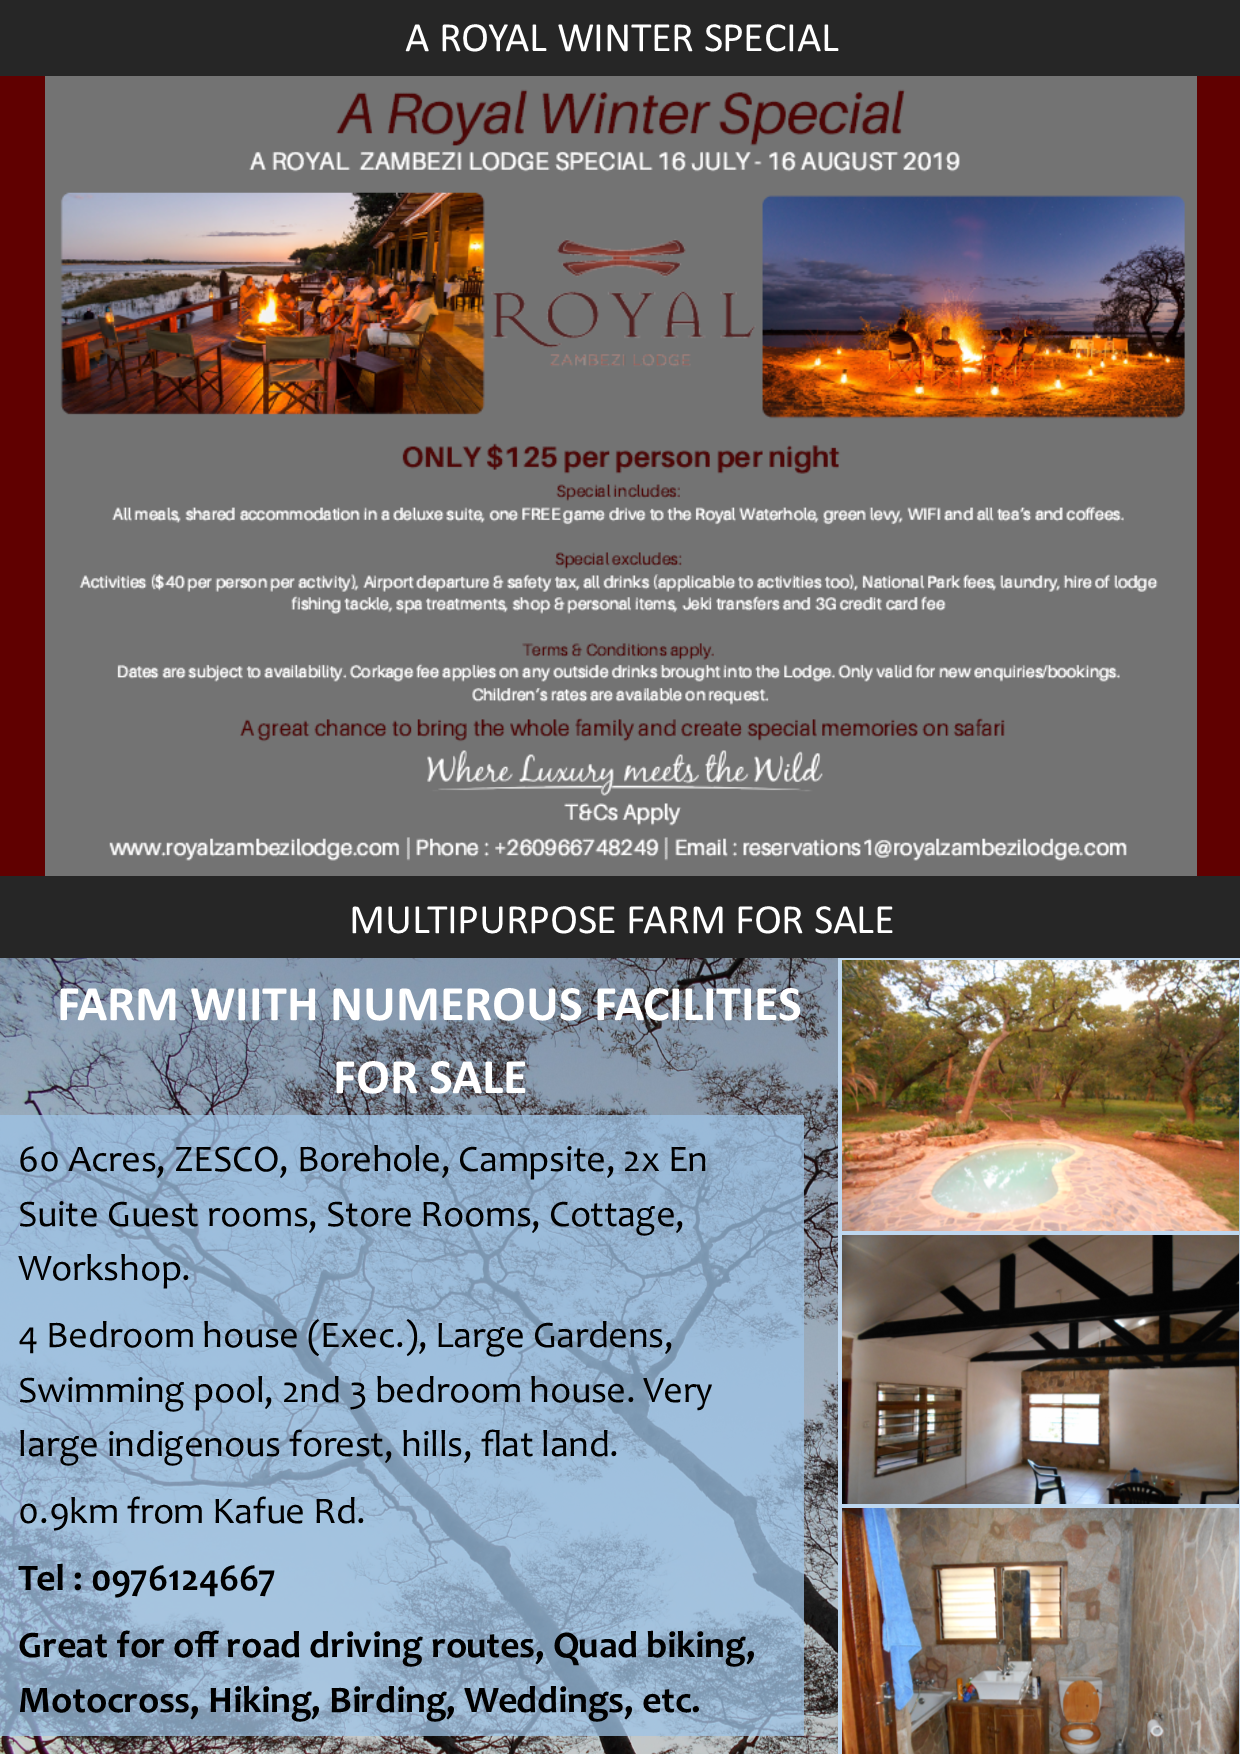 29 07 2019 - A ROYAL WINTER SPECIAL / MULTIPURPOSE FARM FOR SALE